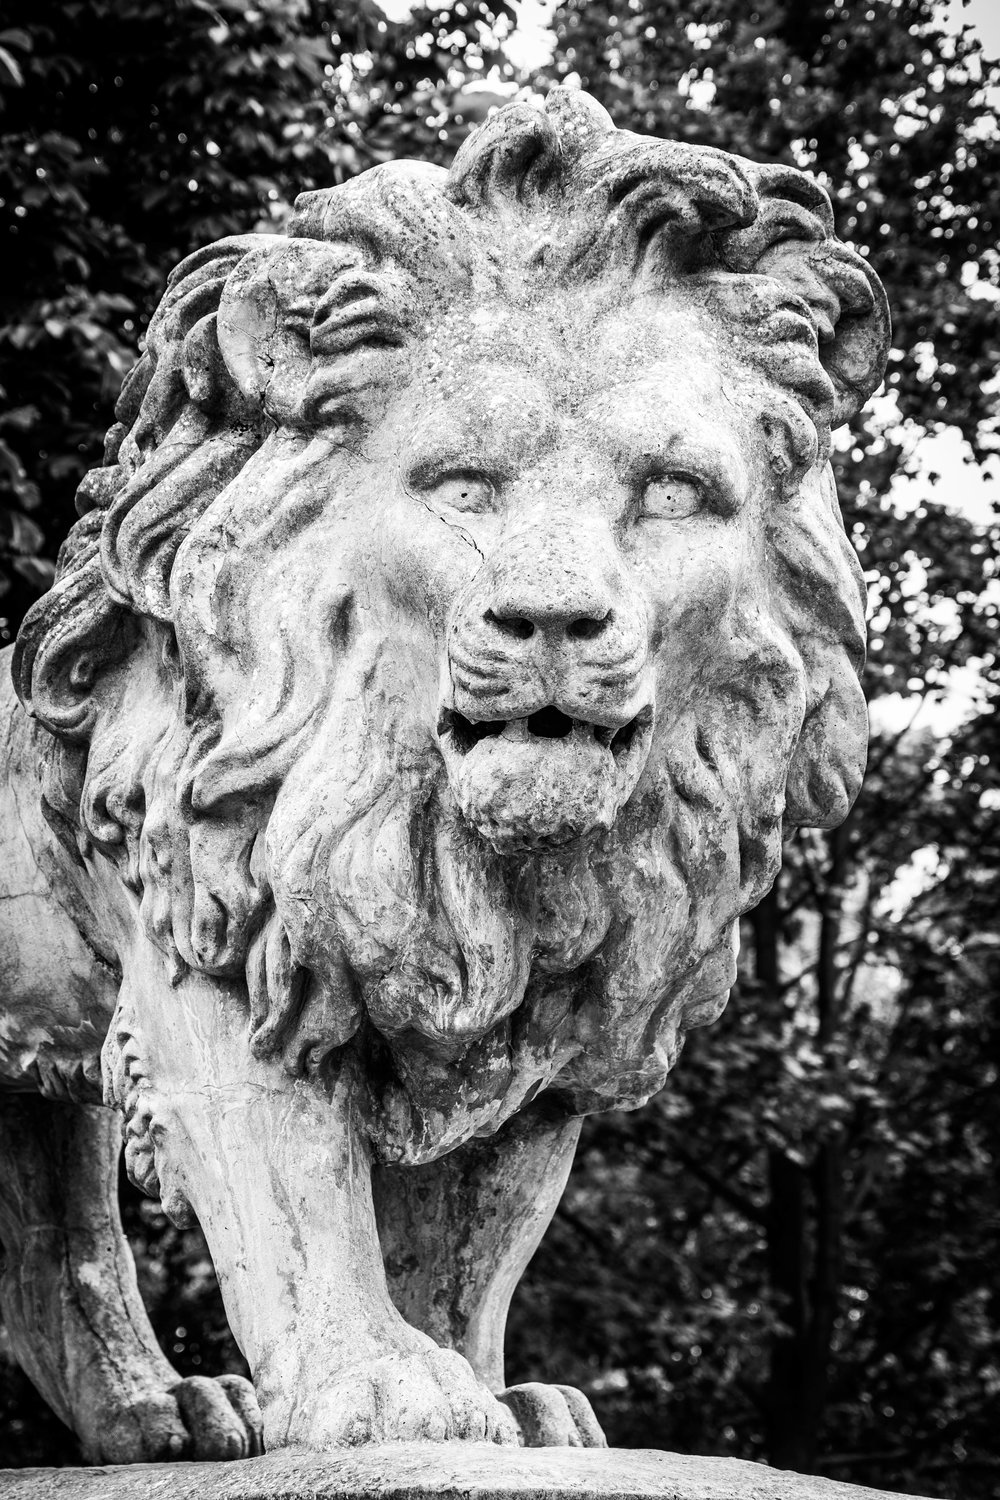 the centrepiece of The Arboretum, the lion sculpture erected in 1872